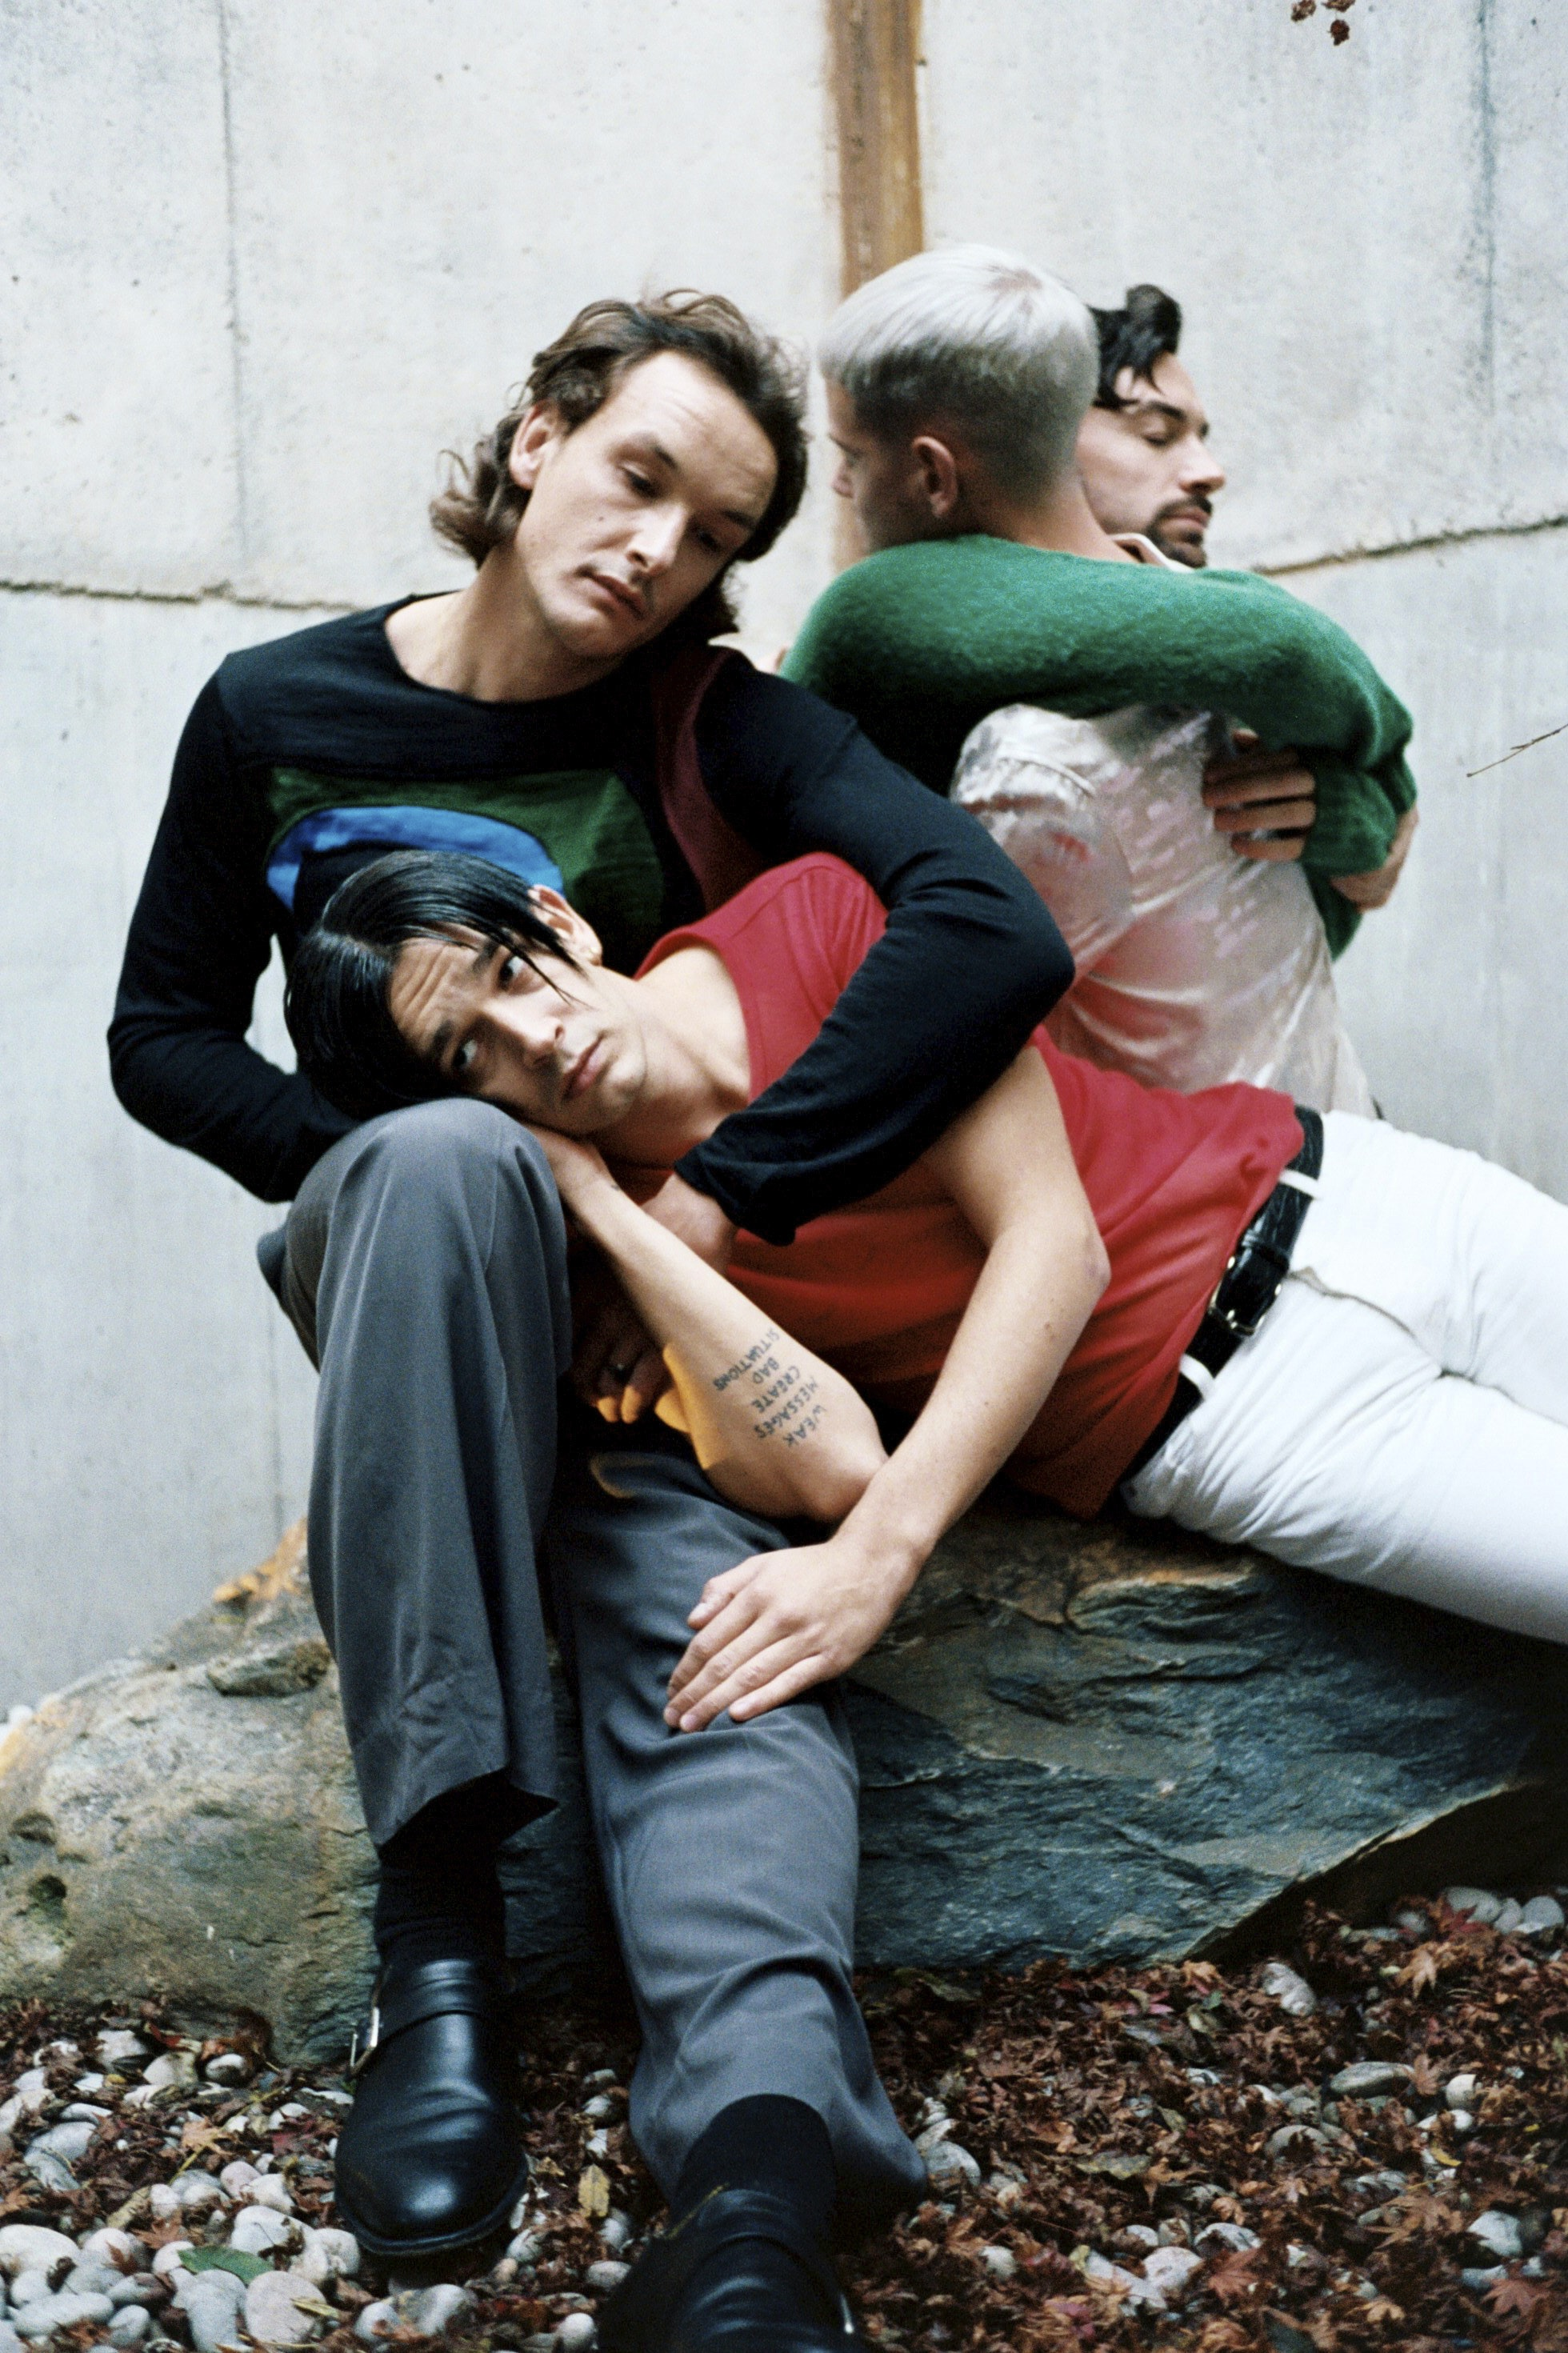 The 1975 know how long love hurts